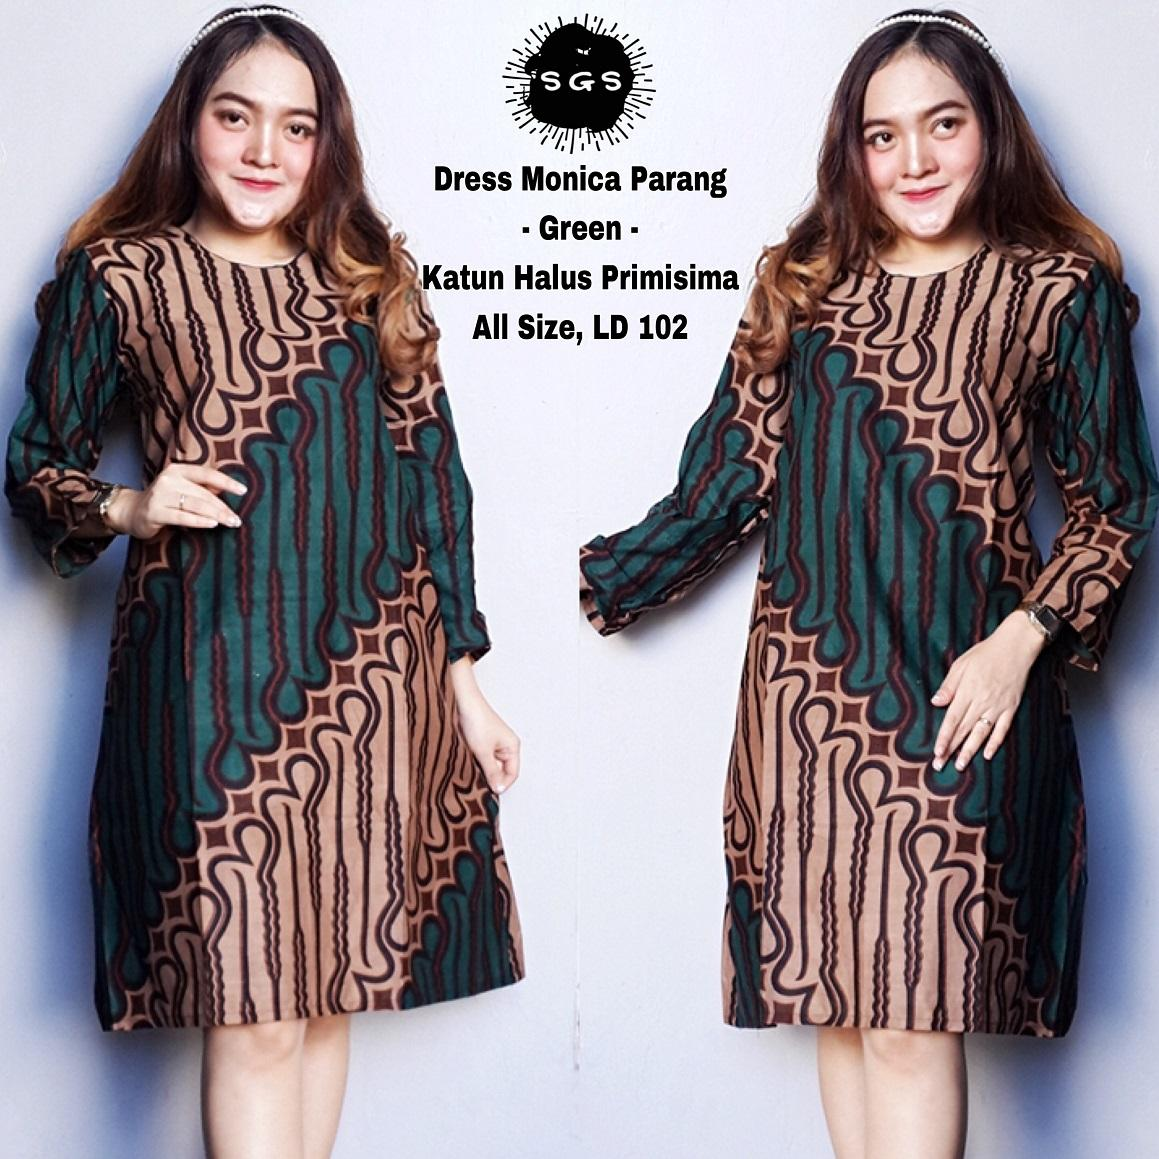 Atasan Dress Tunik Batik Wanita - Dress Wanita - Monica Parang OrenIDR59800. Rp 59.800